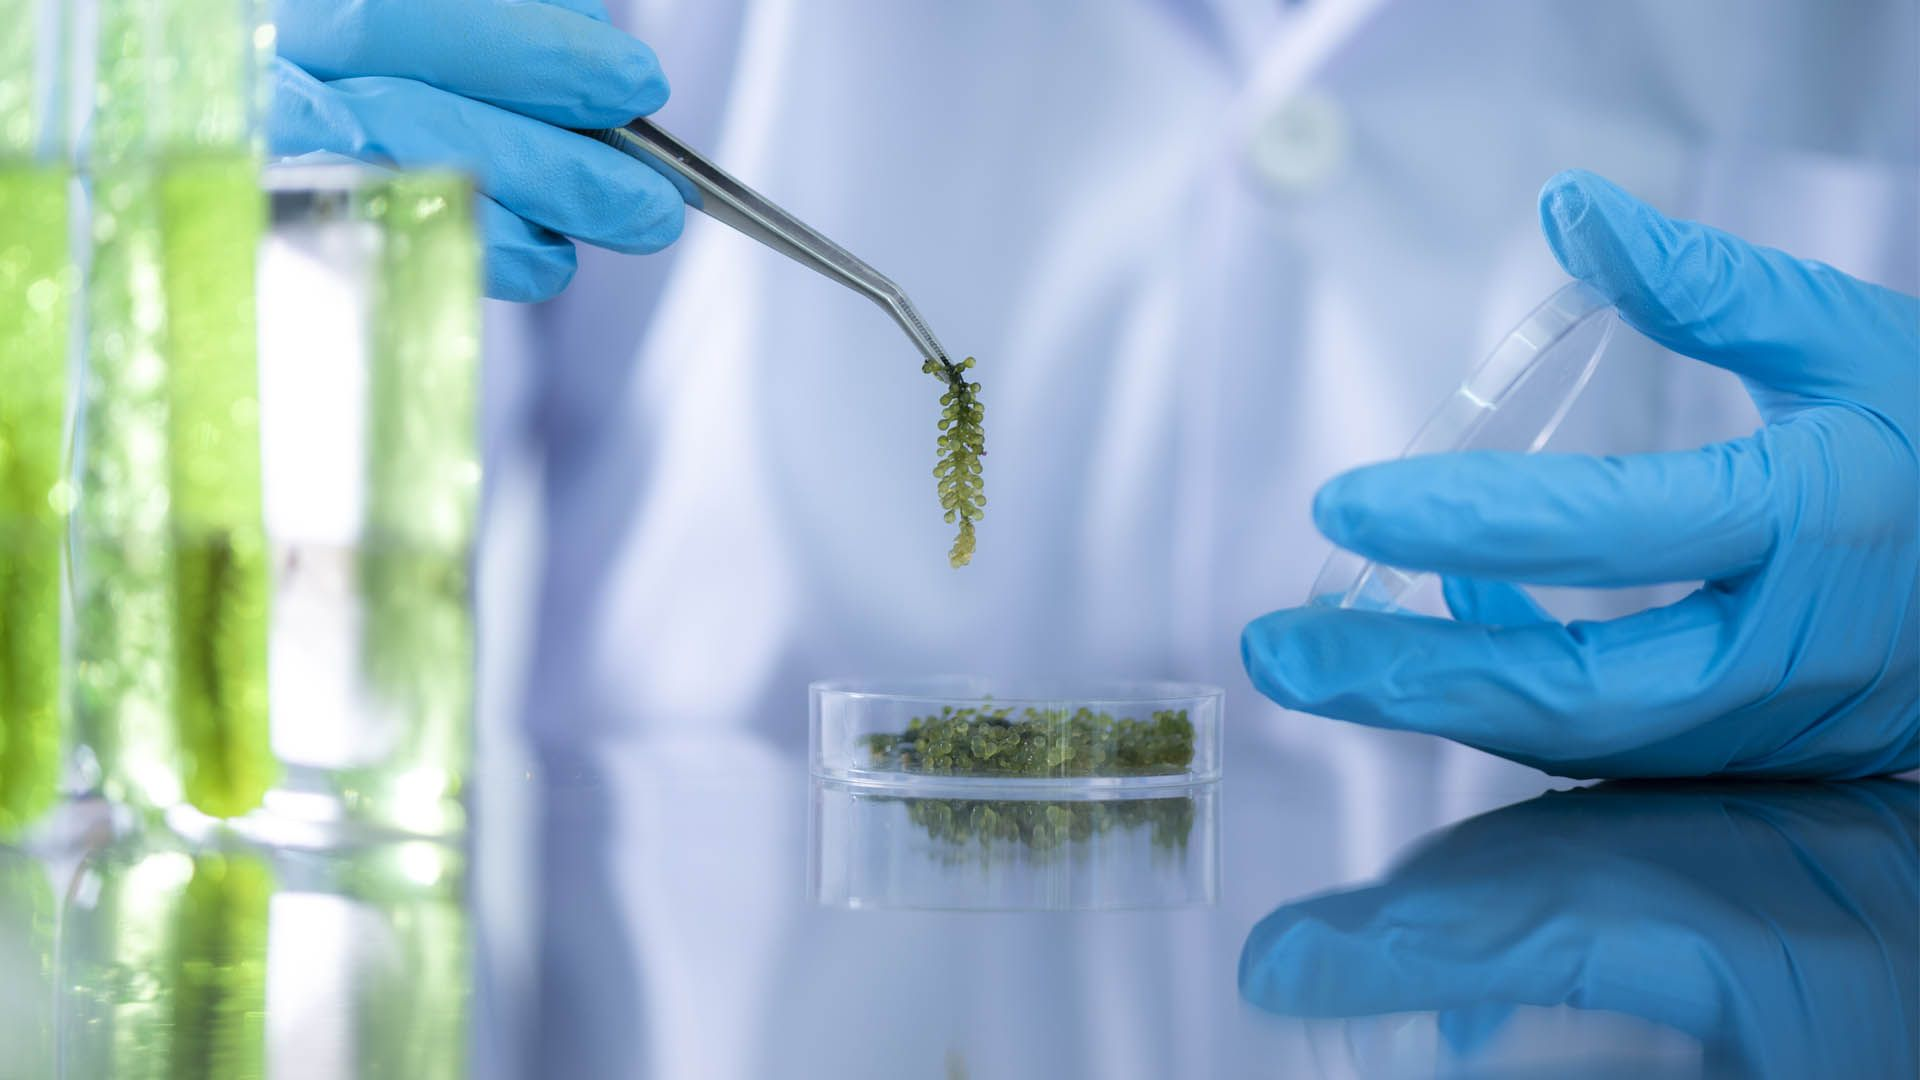 Cannabis and medicinal plant research